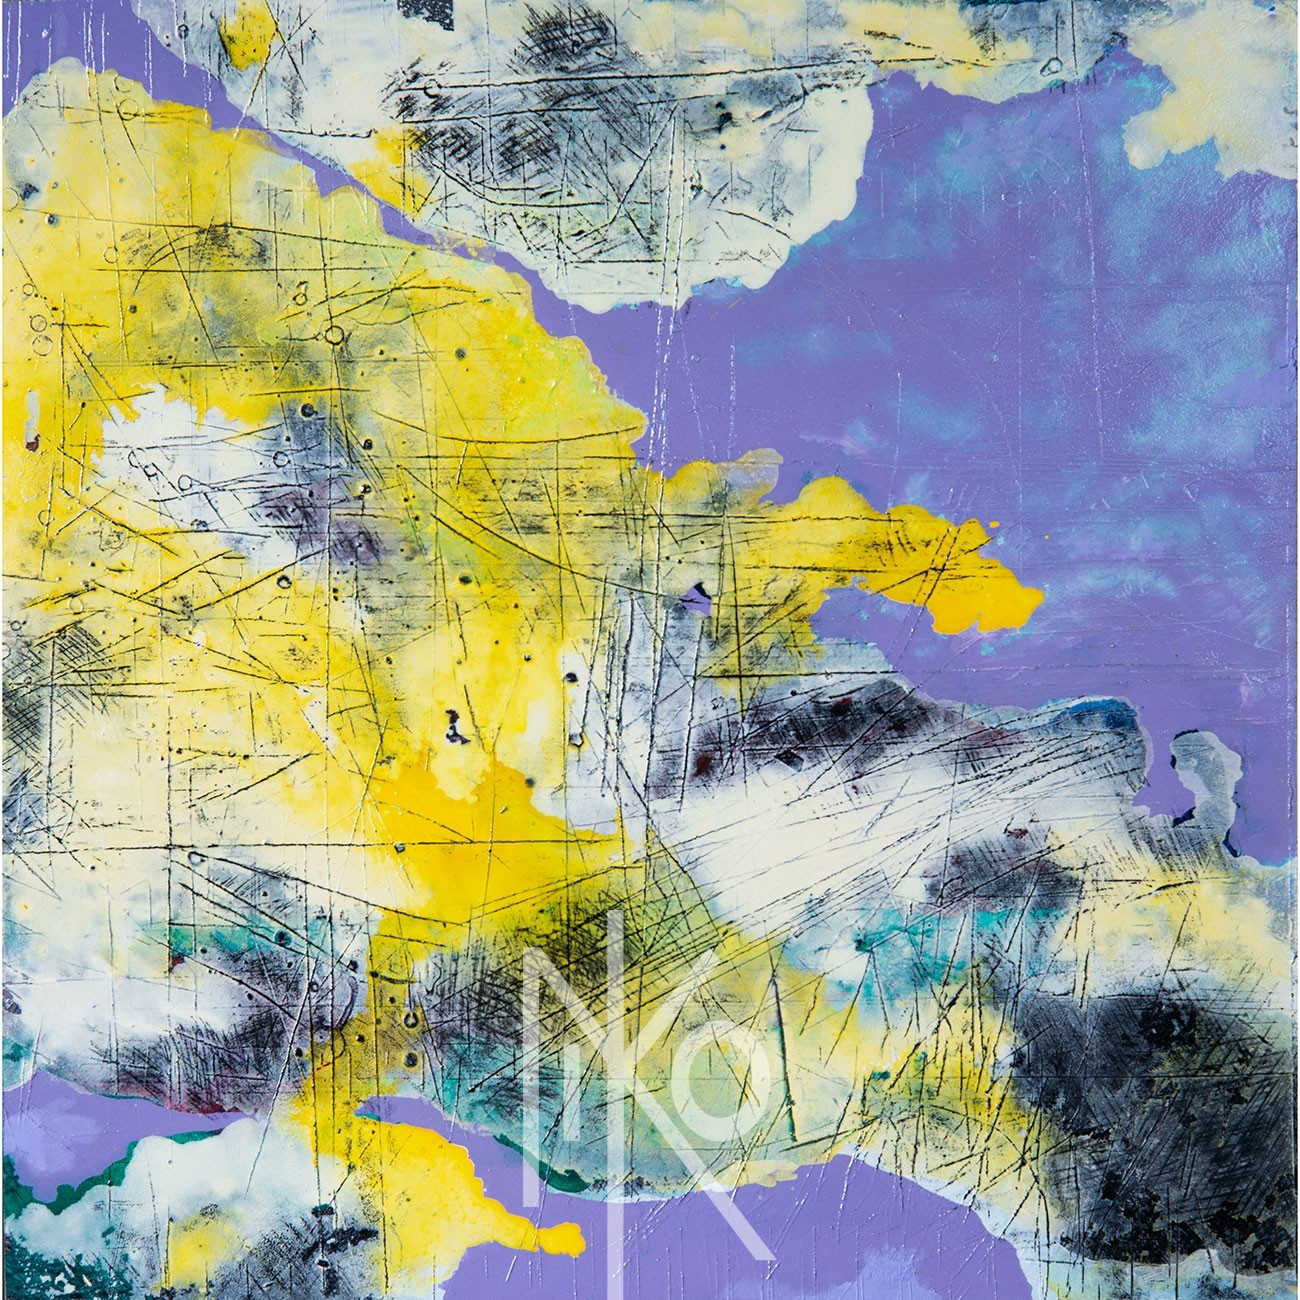 Storm Abstraction Painting by Niko Yulis